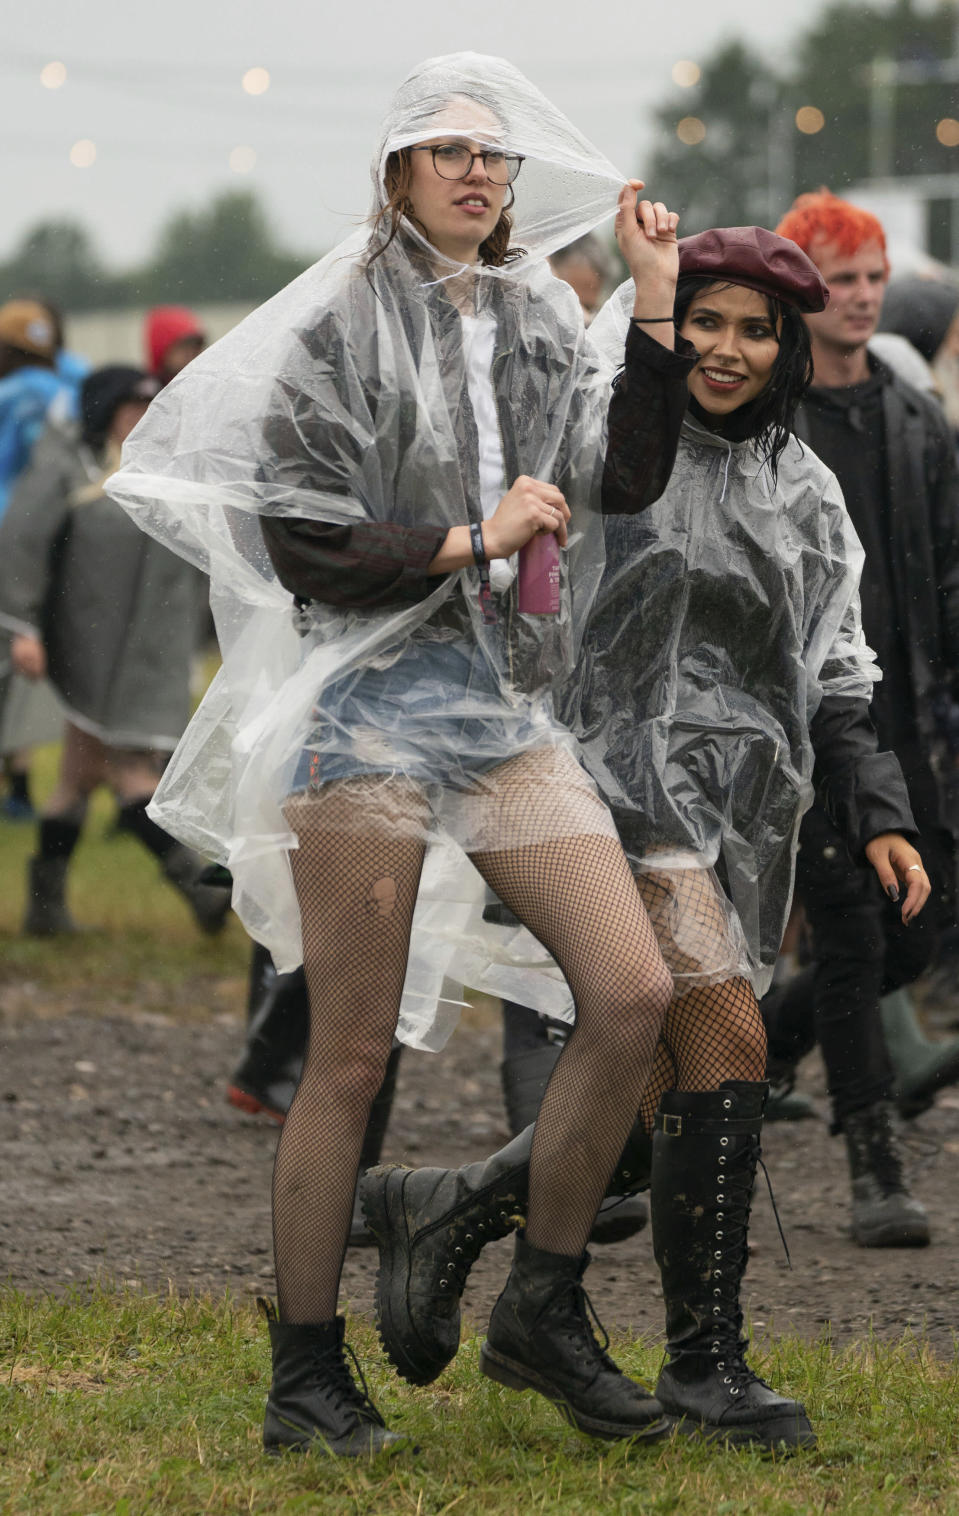 Festivalgoers shelters from the pouring rain on the first day of Download Festival at Donington Park at Castle Donington, England, Friday June 18, 2021. The three-day music and arts festival is being held as a test event to examine how Covid-19 transmission takes place in crowds, with the the capacity significantly reduced from the normal numbers. (Joe Giddens/PA via AP)